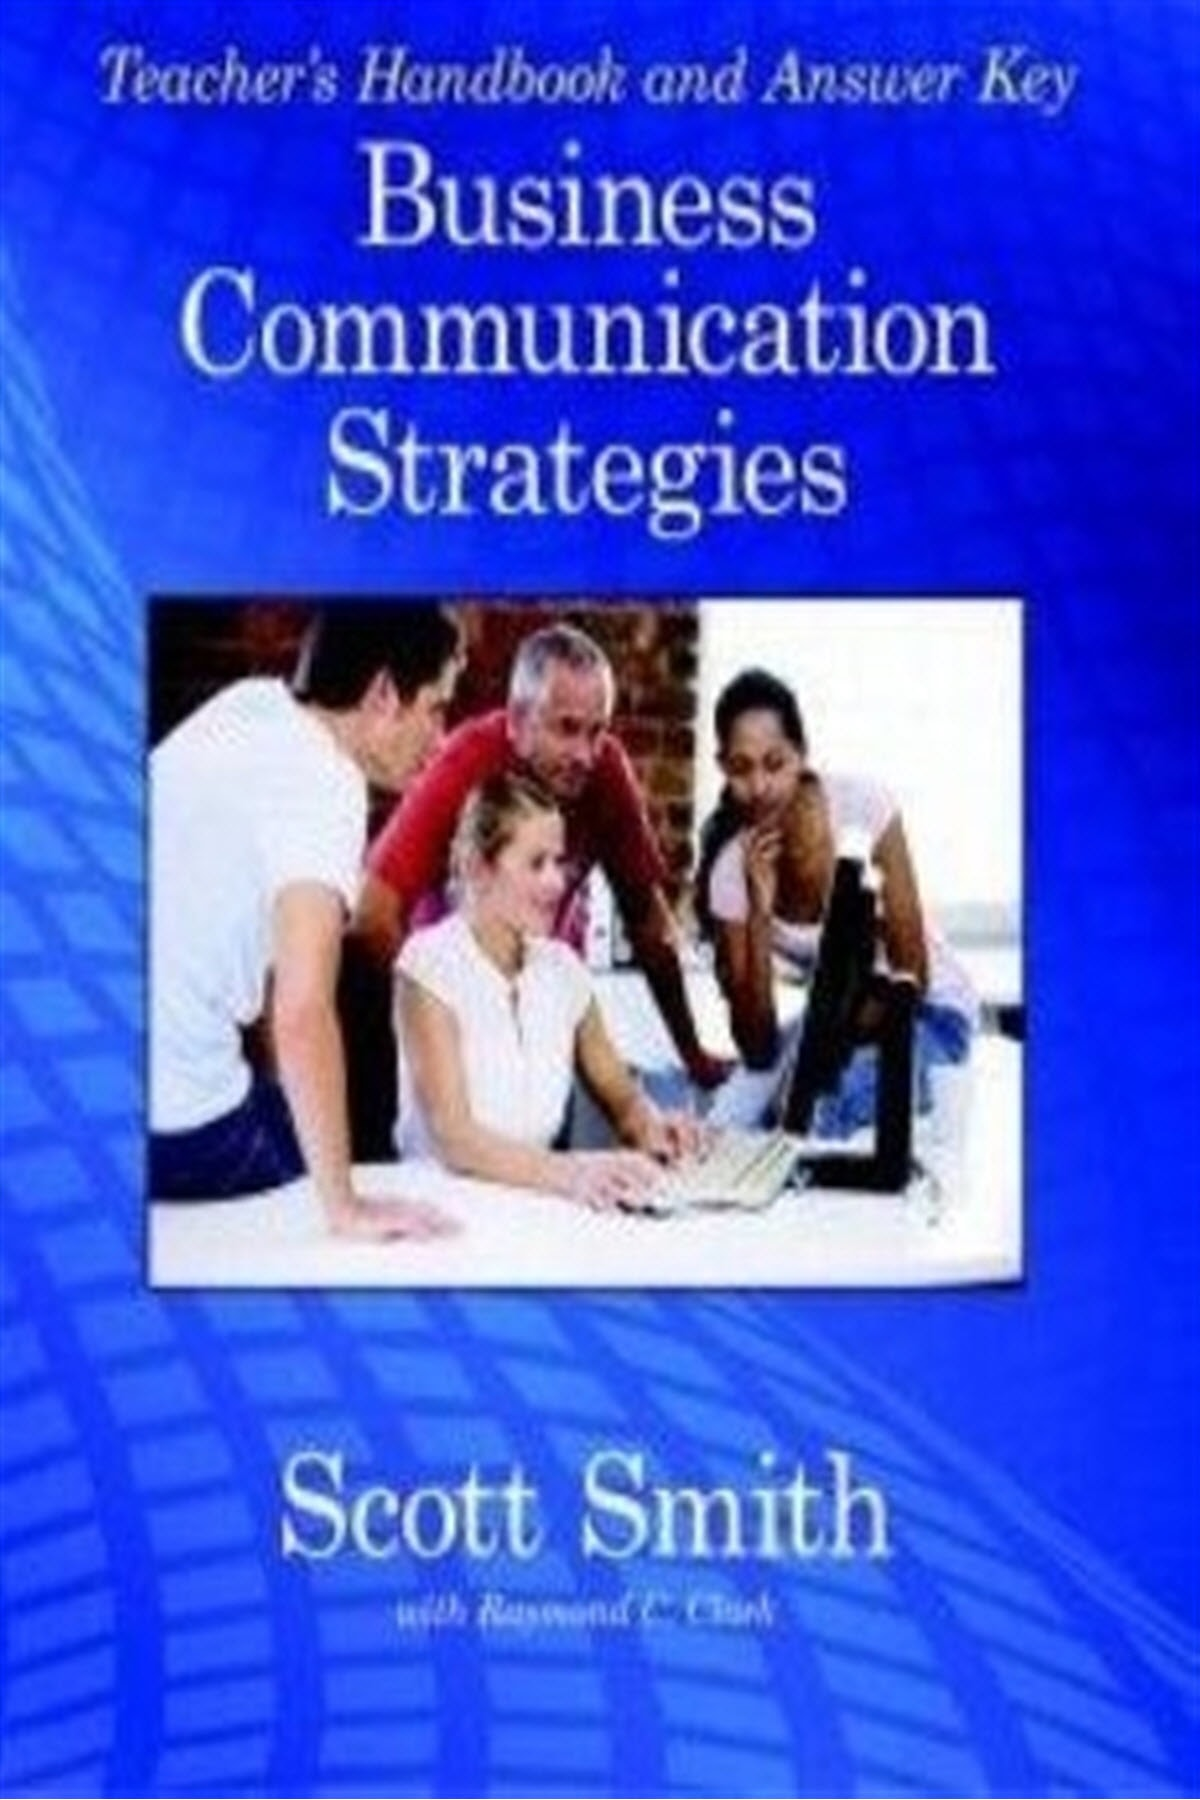 Business Communication Strategies - Scott Smith